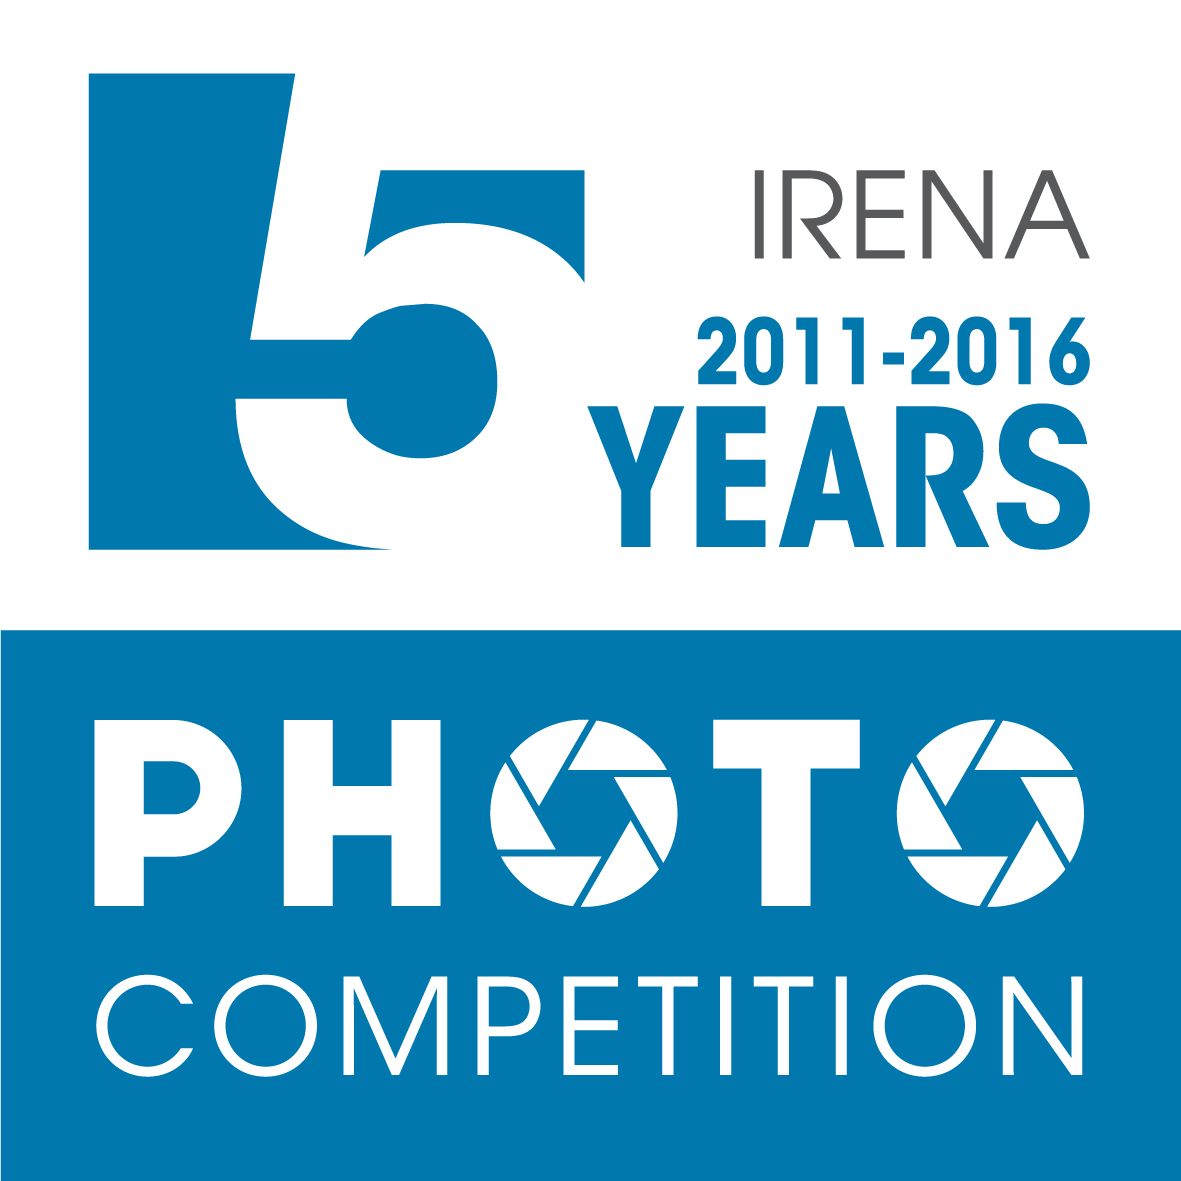 5 Years of Renewable Energy Solutions: International Photo Competition